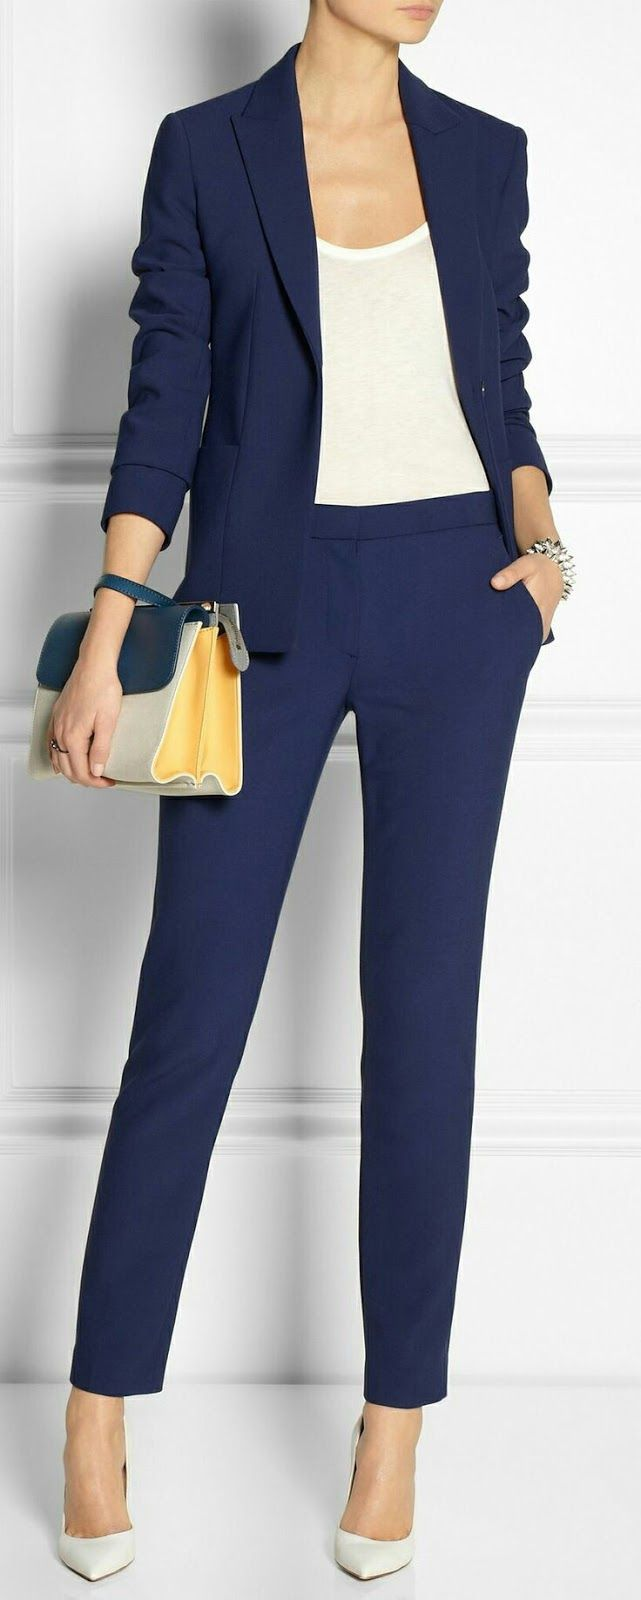 170 Tailored Dresses Idea Work Outfits Outfits Fashion Suits